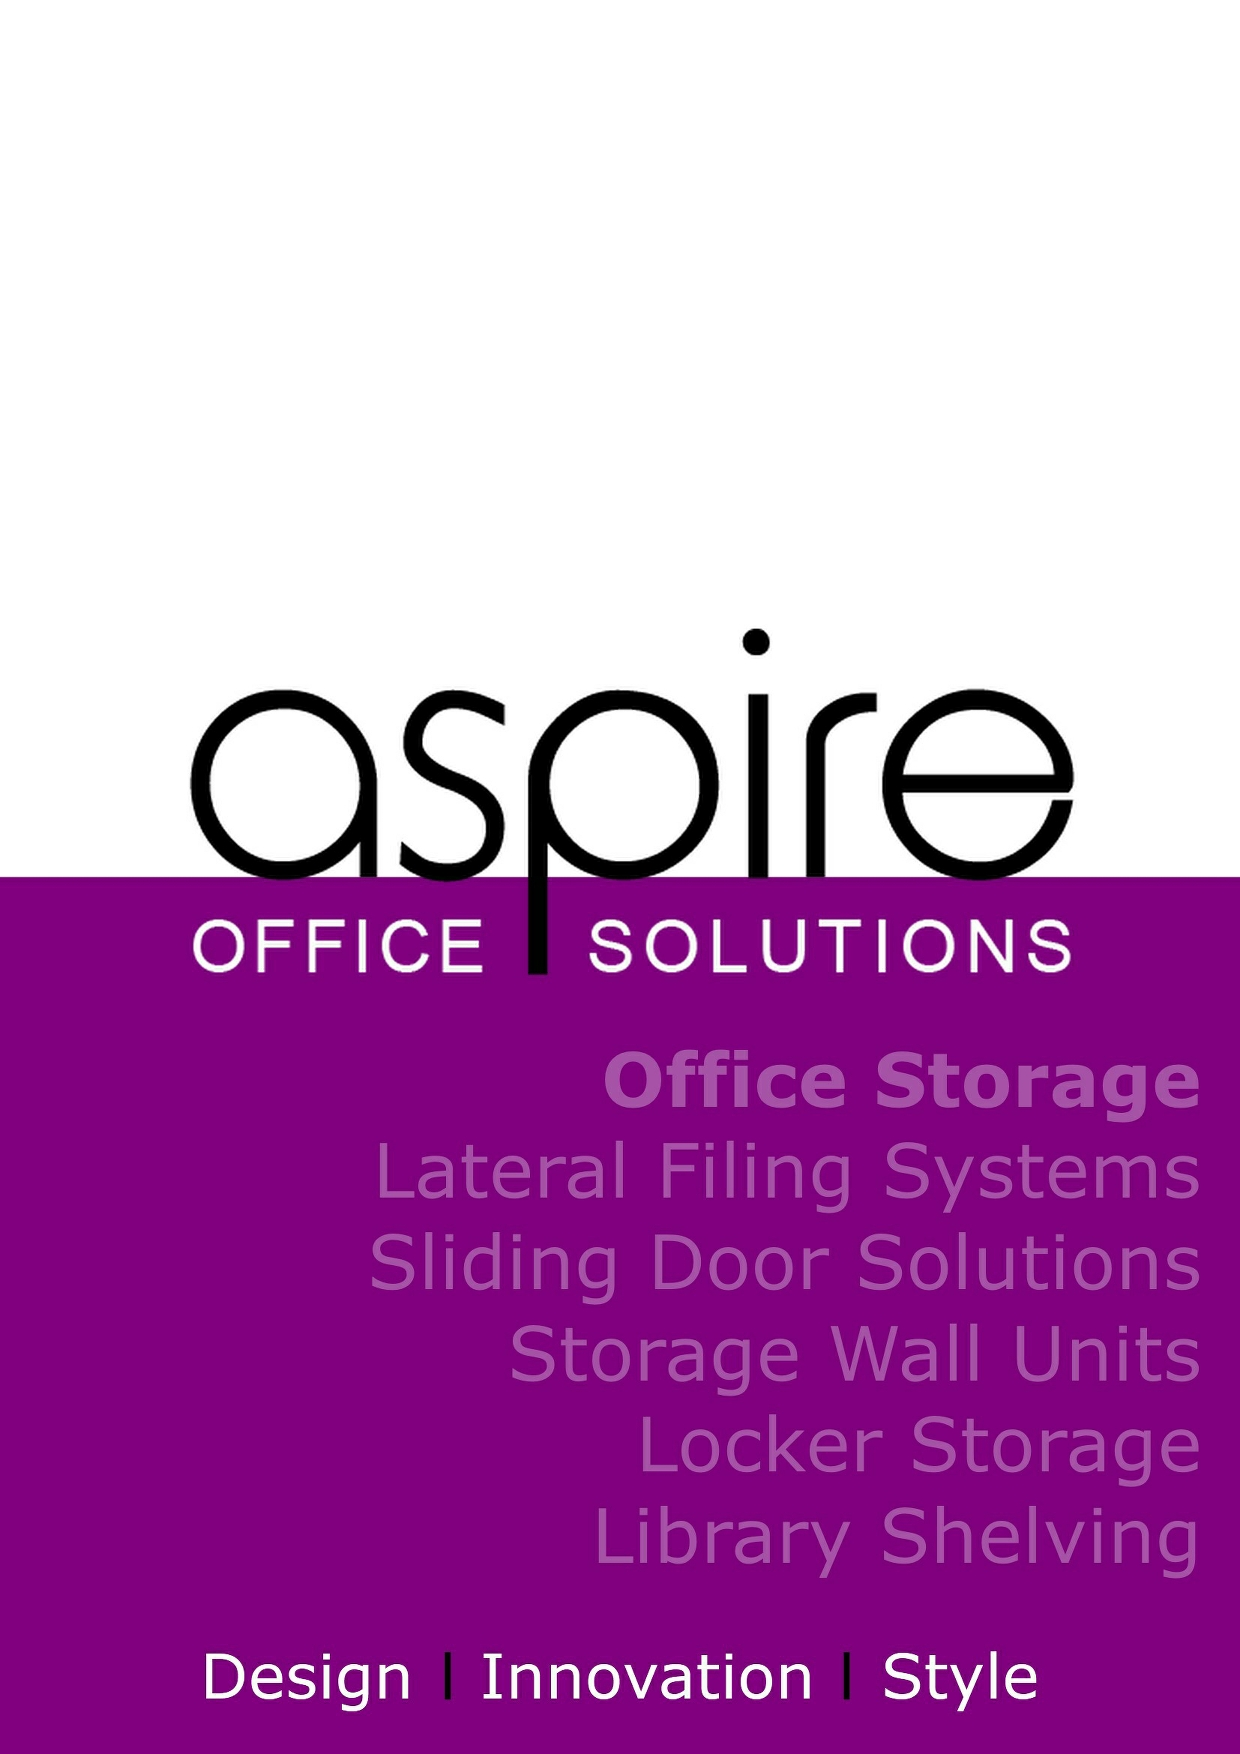 4_Aspire_Office_Solutions_-_Storage_Brochure